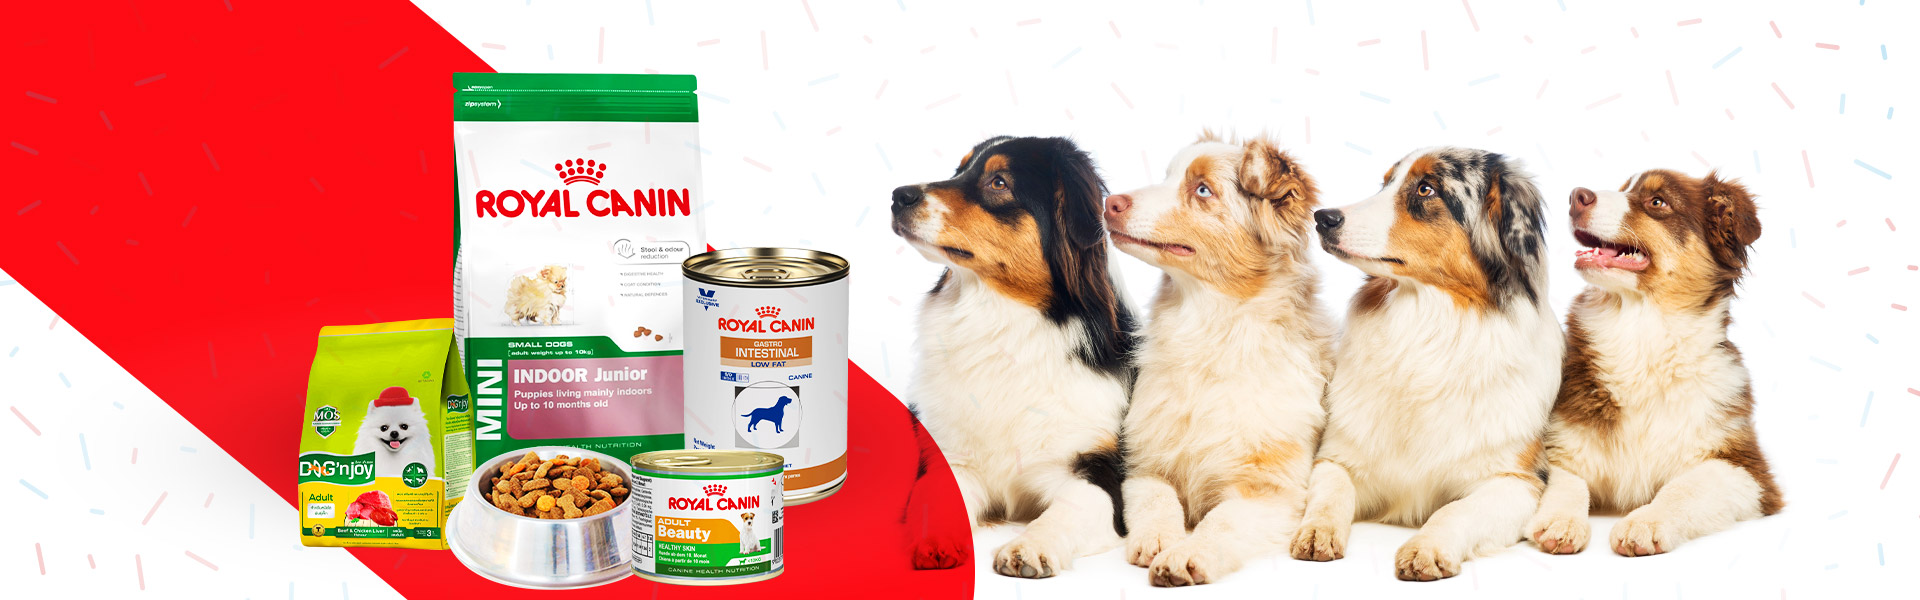 Dog-Food-sbpetshop